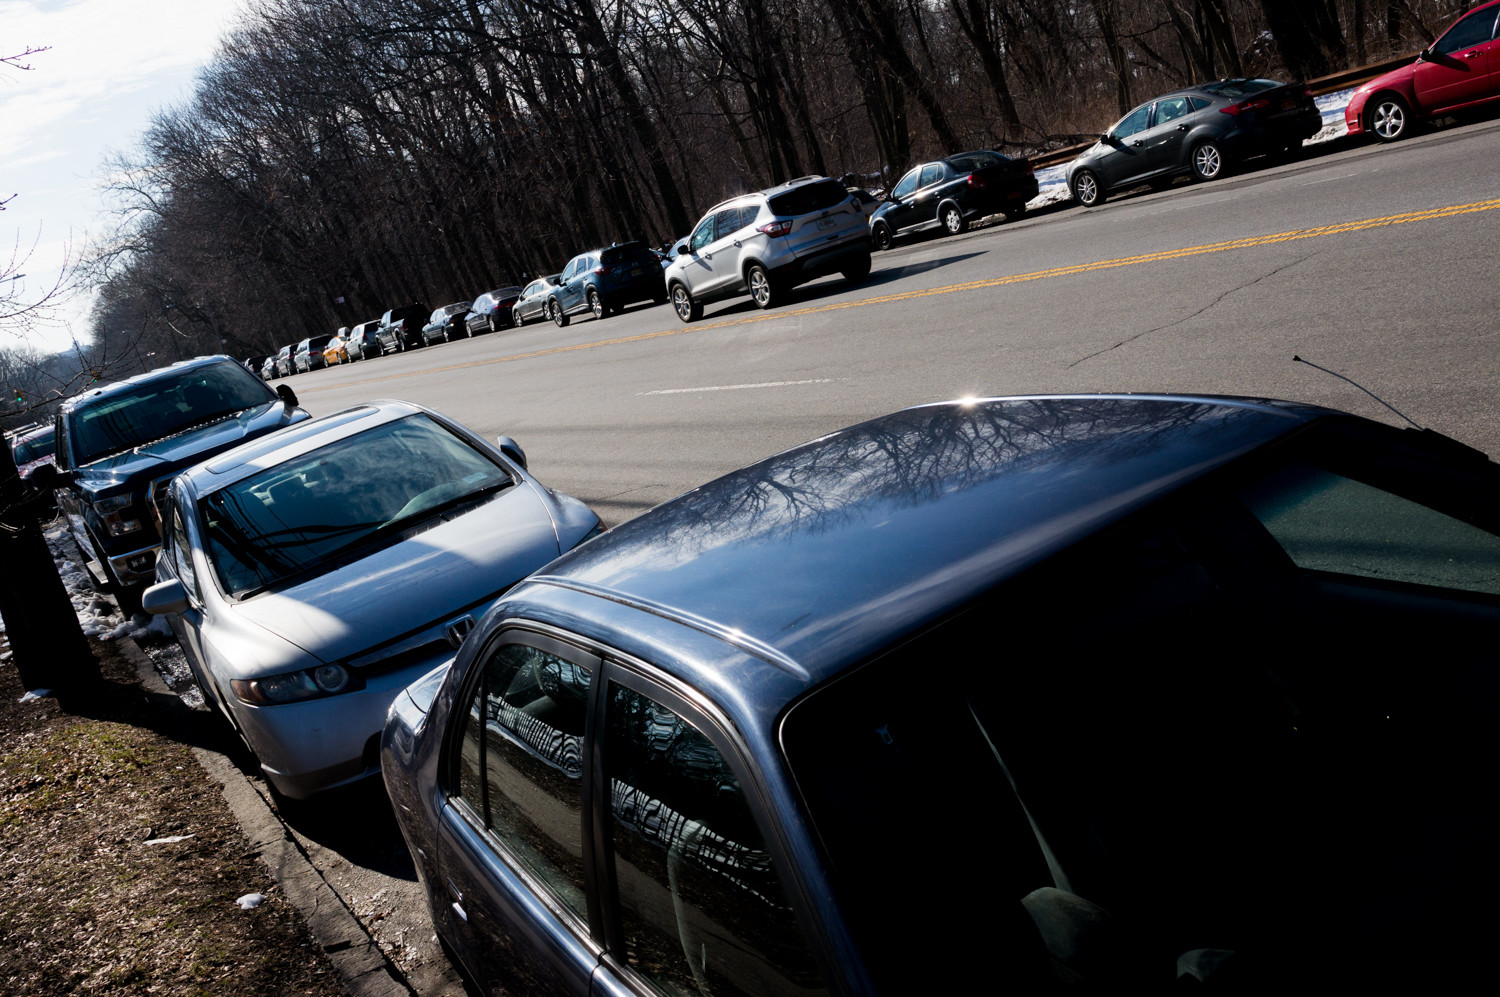 Cars parked along Jerome Avenue near Van Cortlandt Park are particularly susceptible to break-ins, according to a recent study by the app SpotAngels.